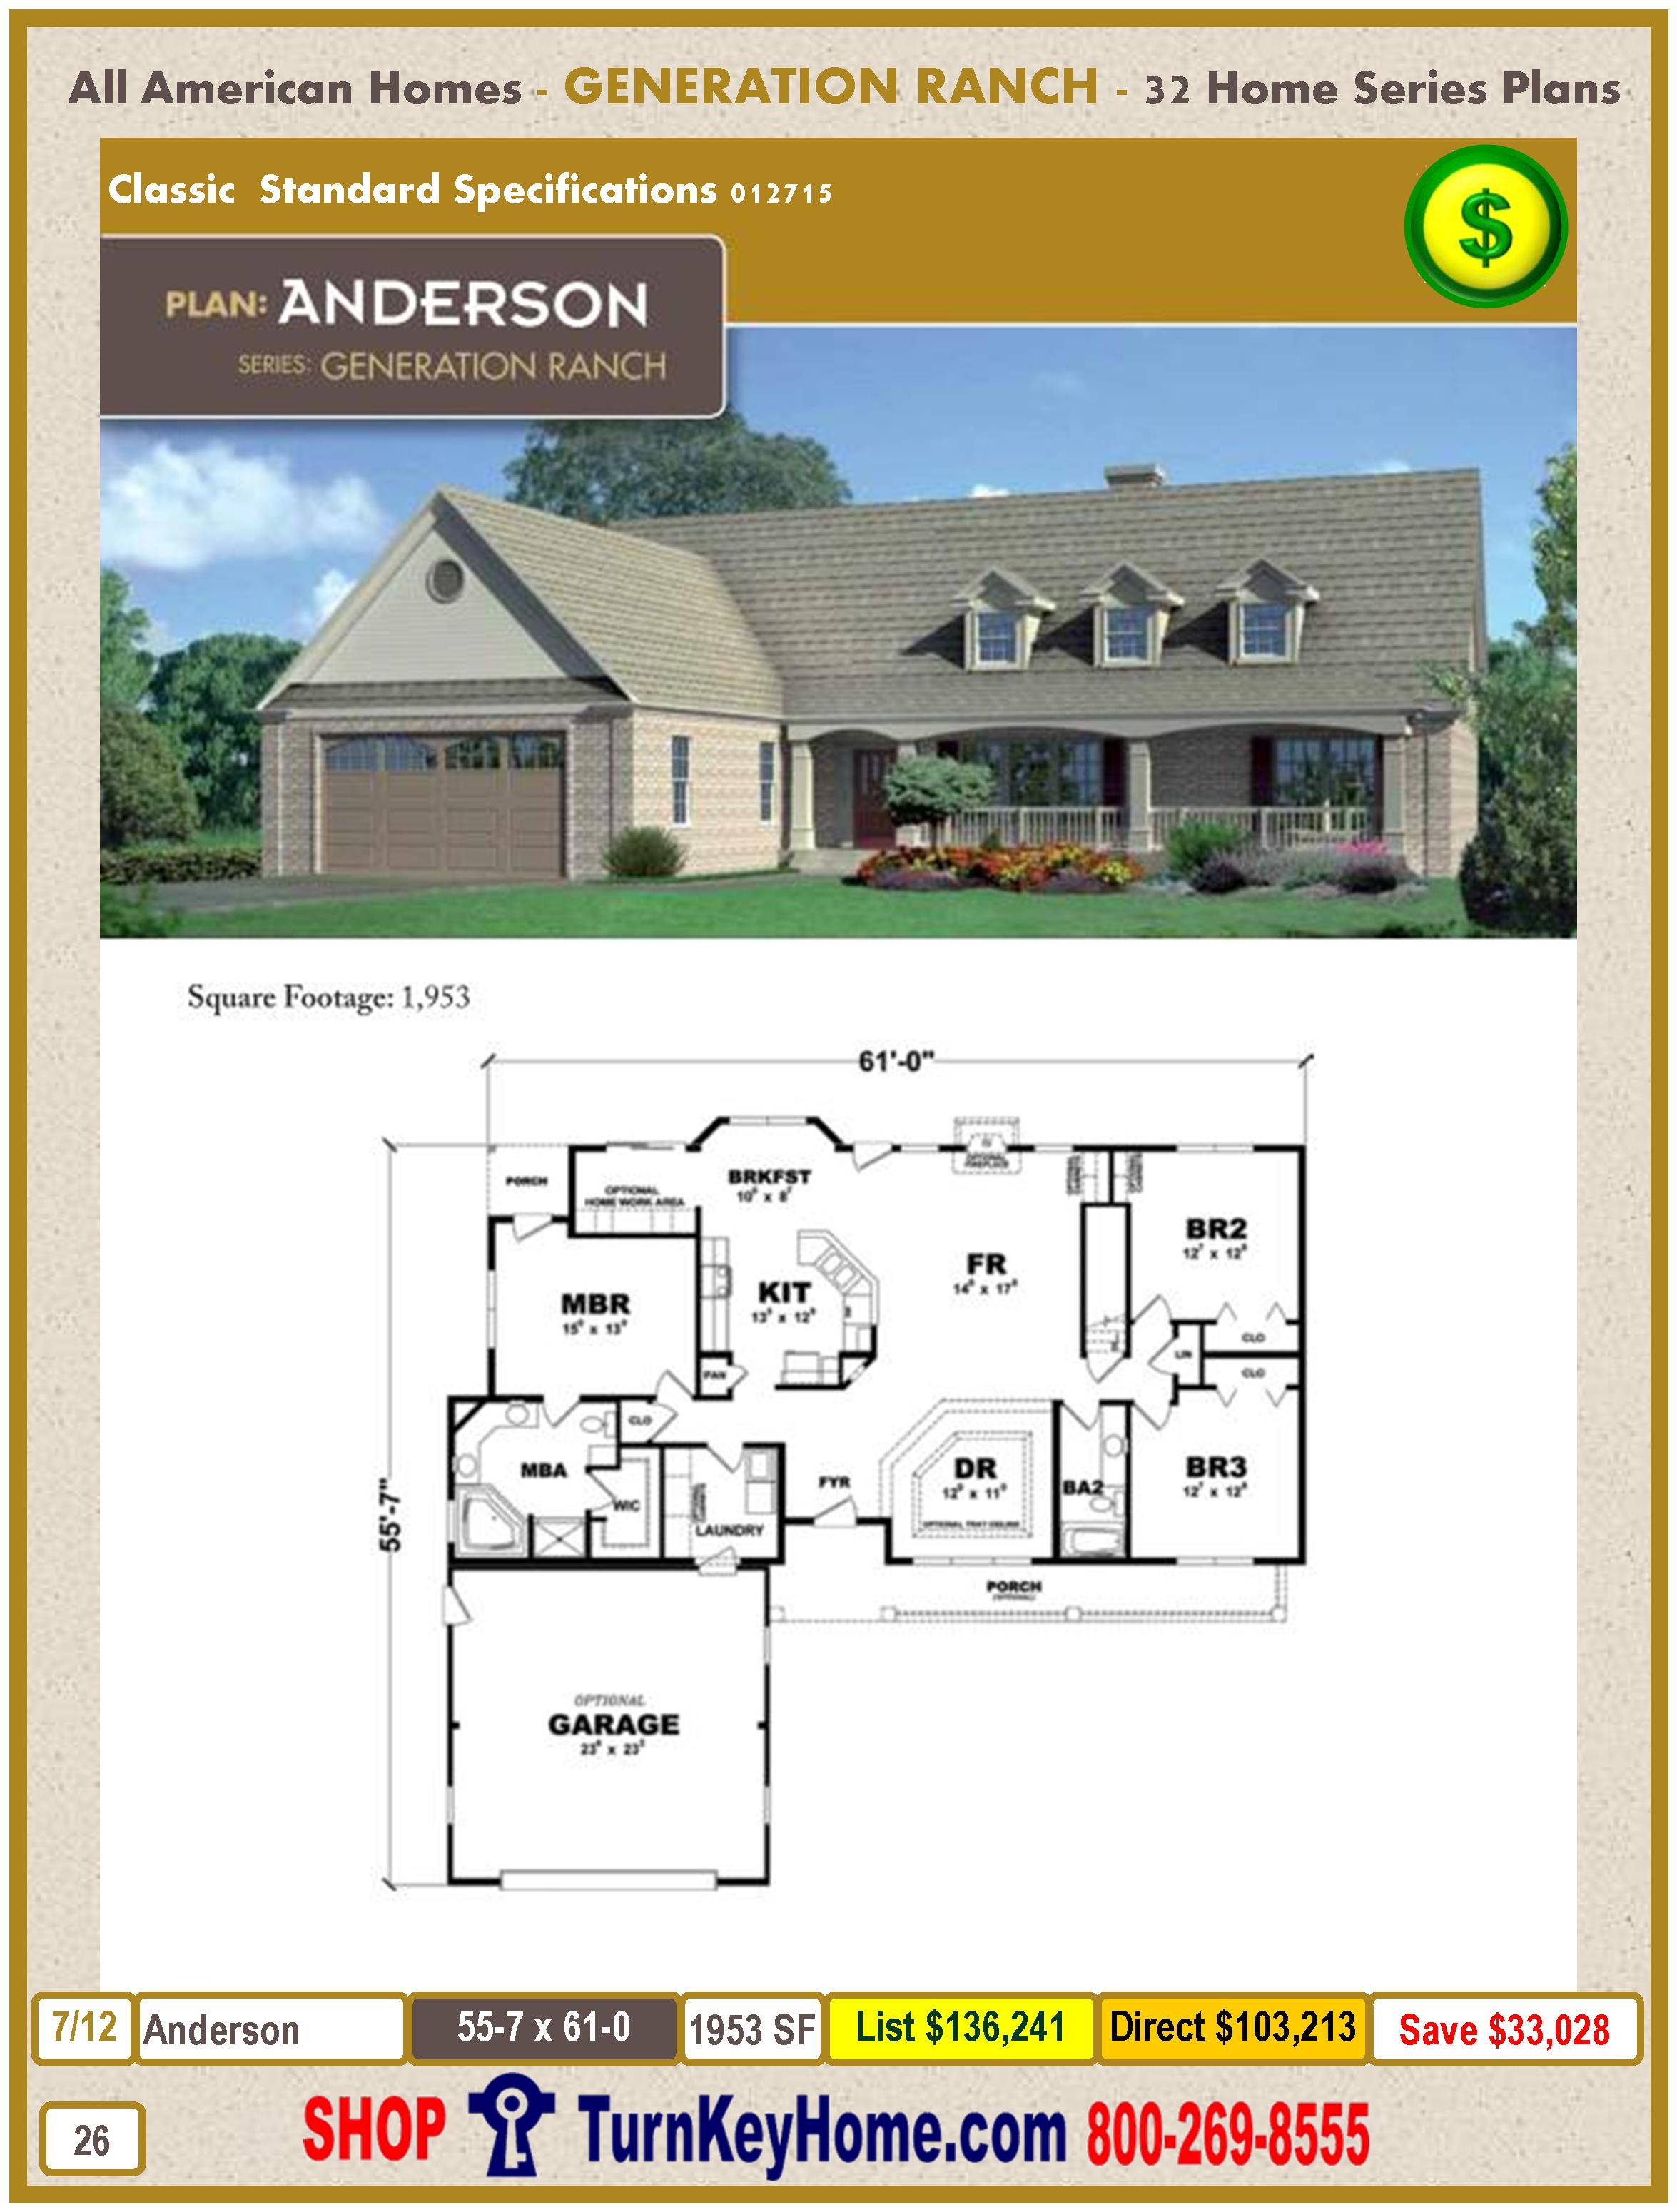 Modular.All.American.Homes.Generation.Ranch.Home.Series.Catalog.Page.26.Anderson.Direct.Price.021415